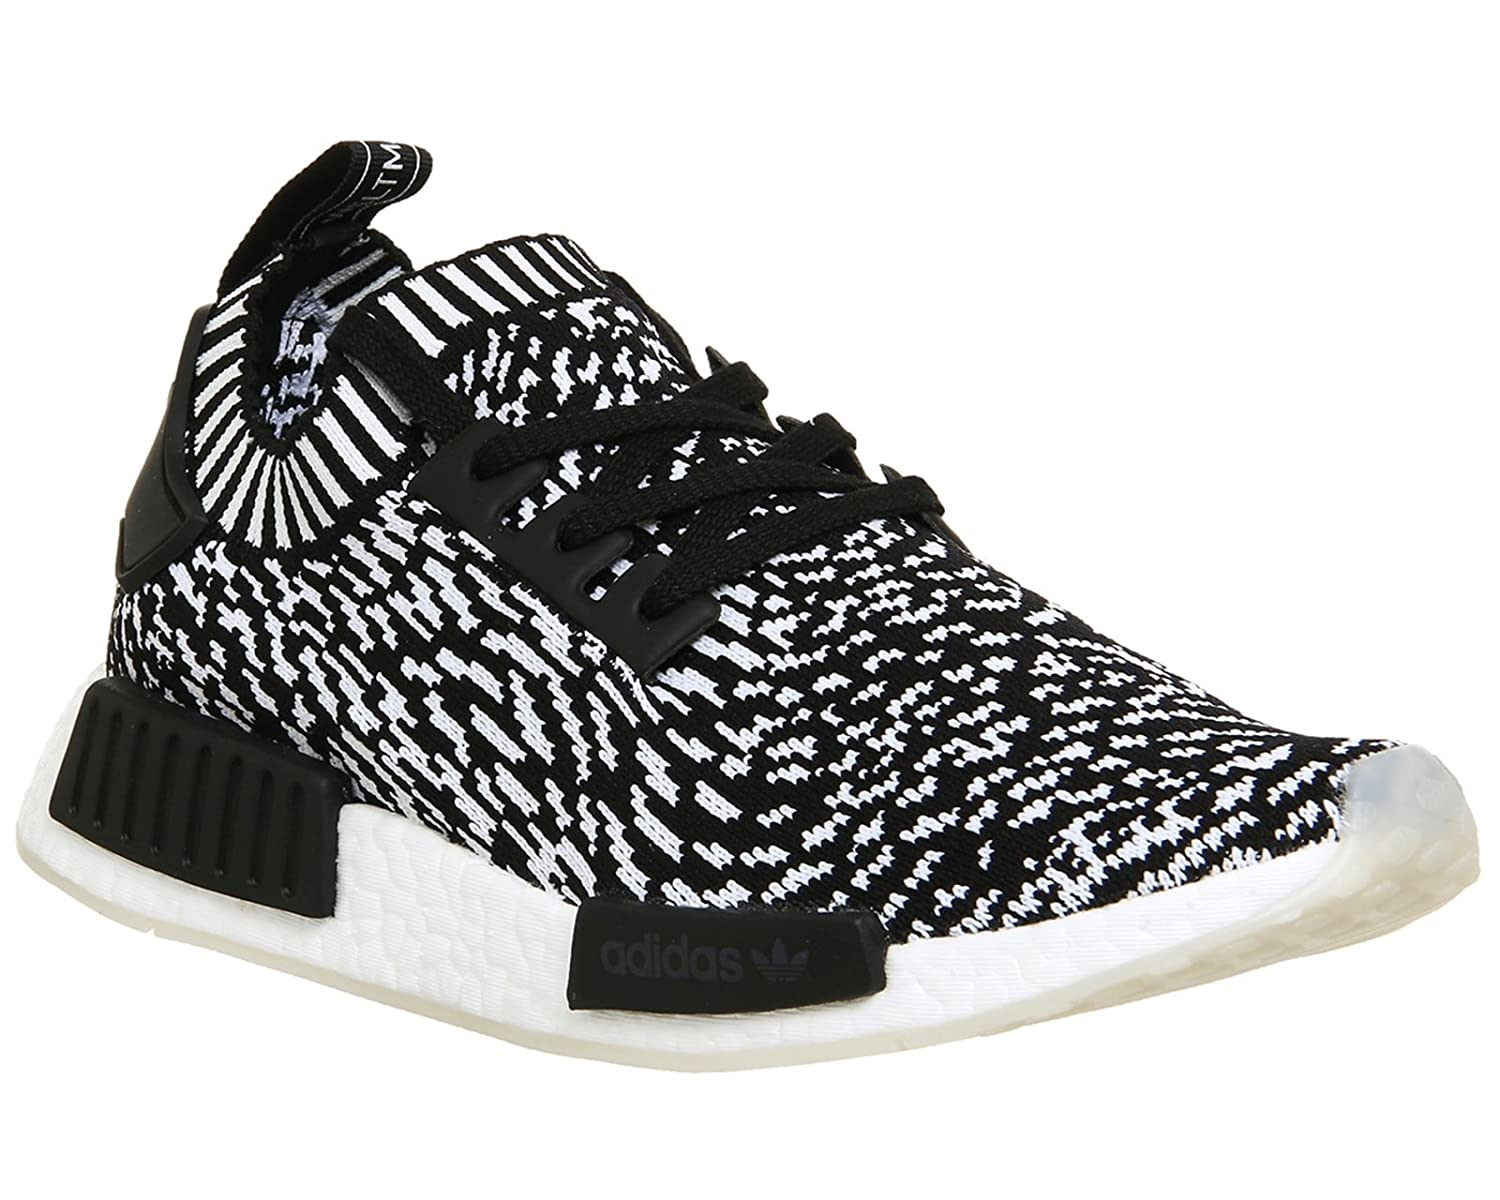 new product 0cdc3 3f3cd Amazon.com   adidas NMD R1 Primeknit (7.5 D(M) US, Black)   Trail Running